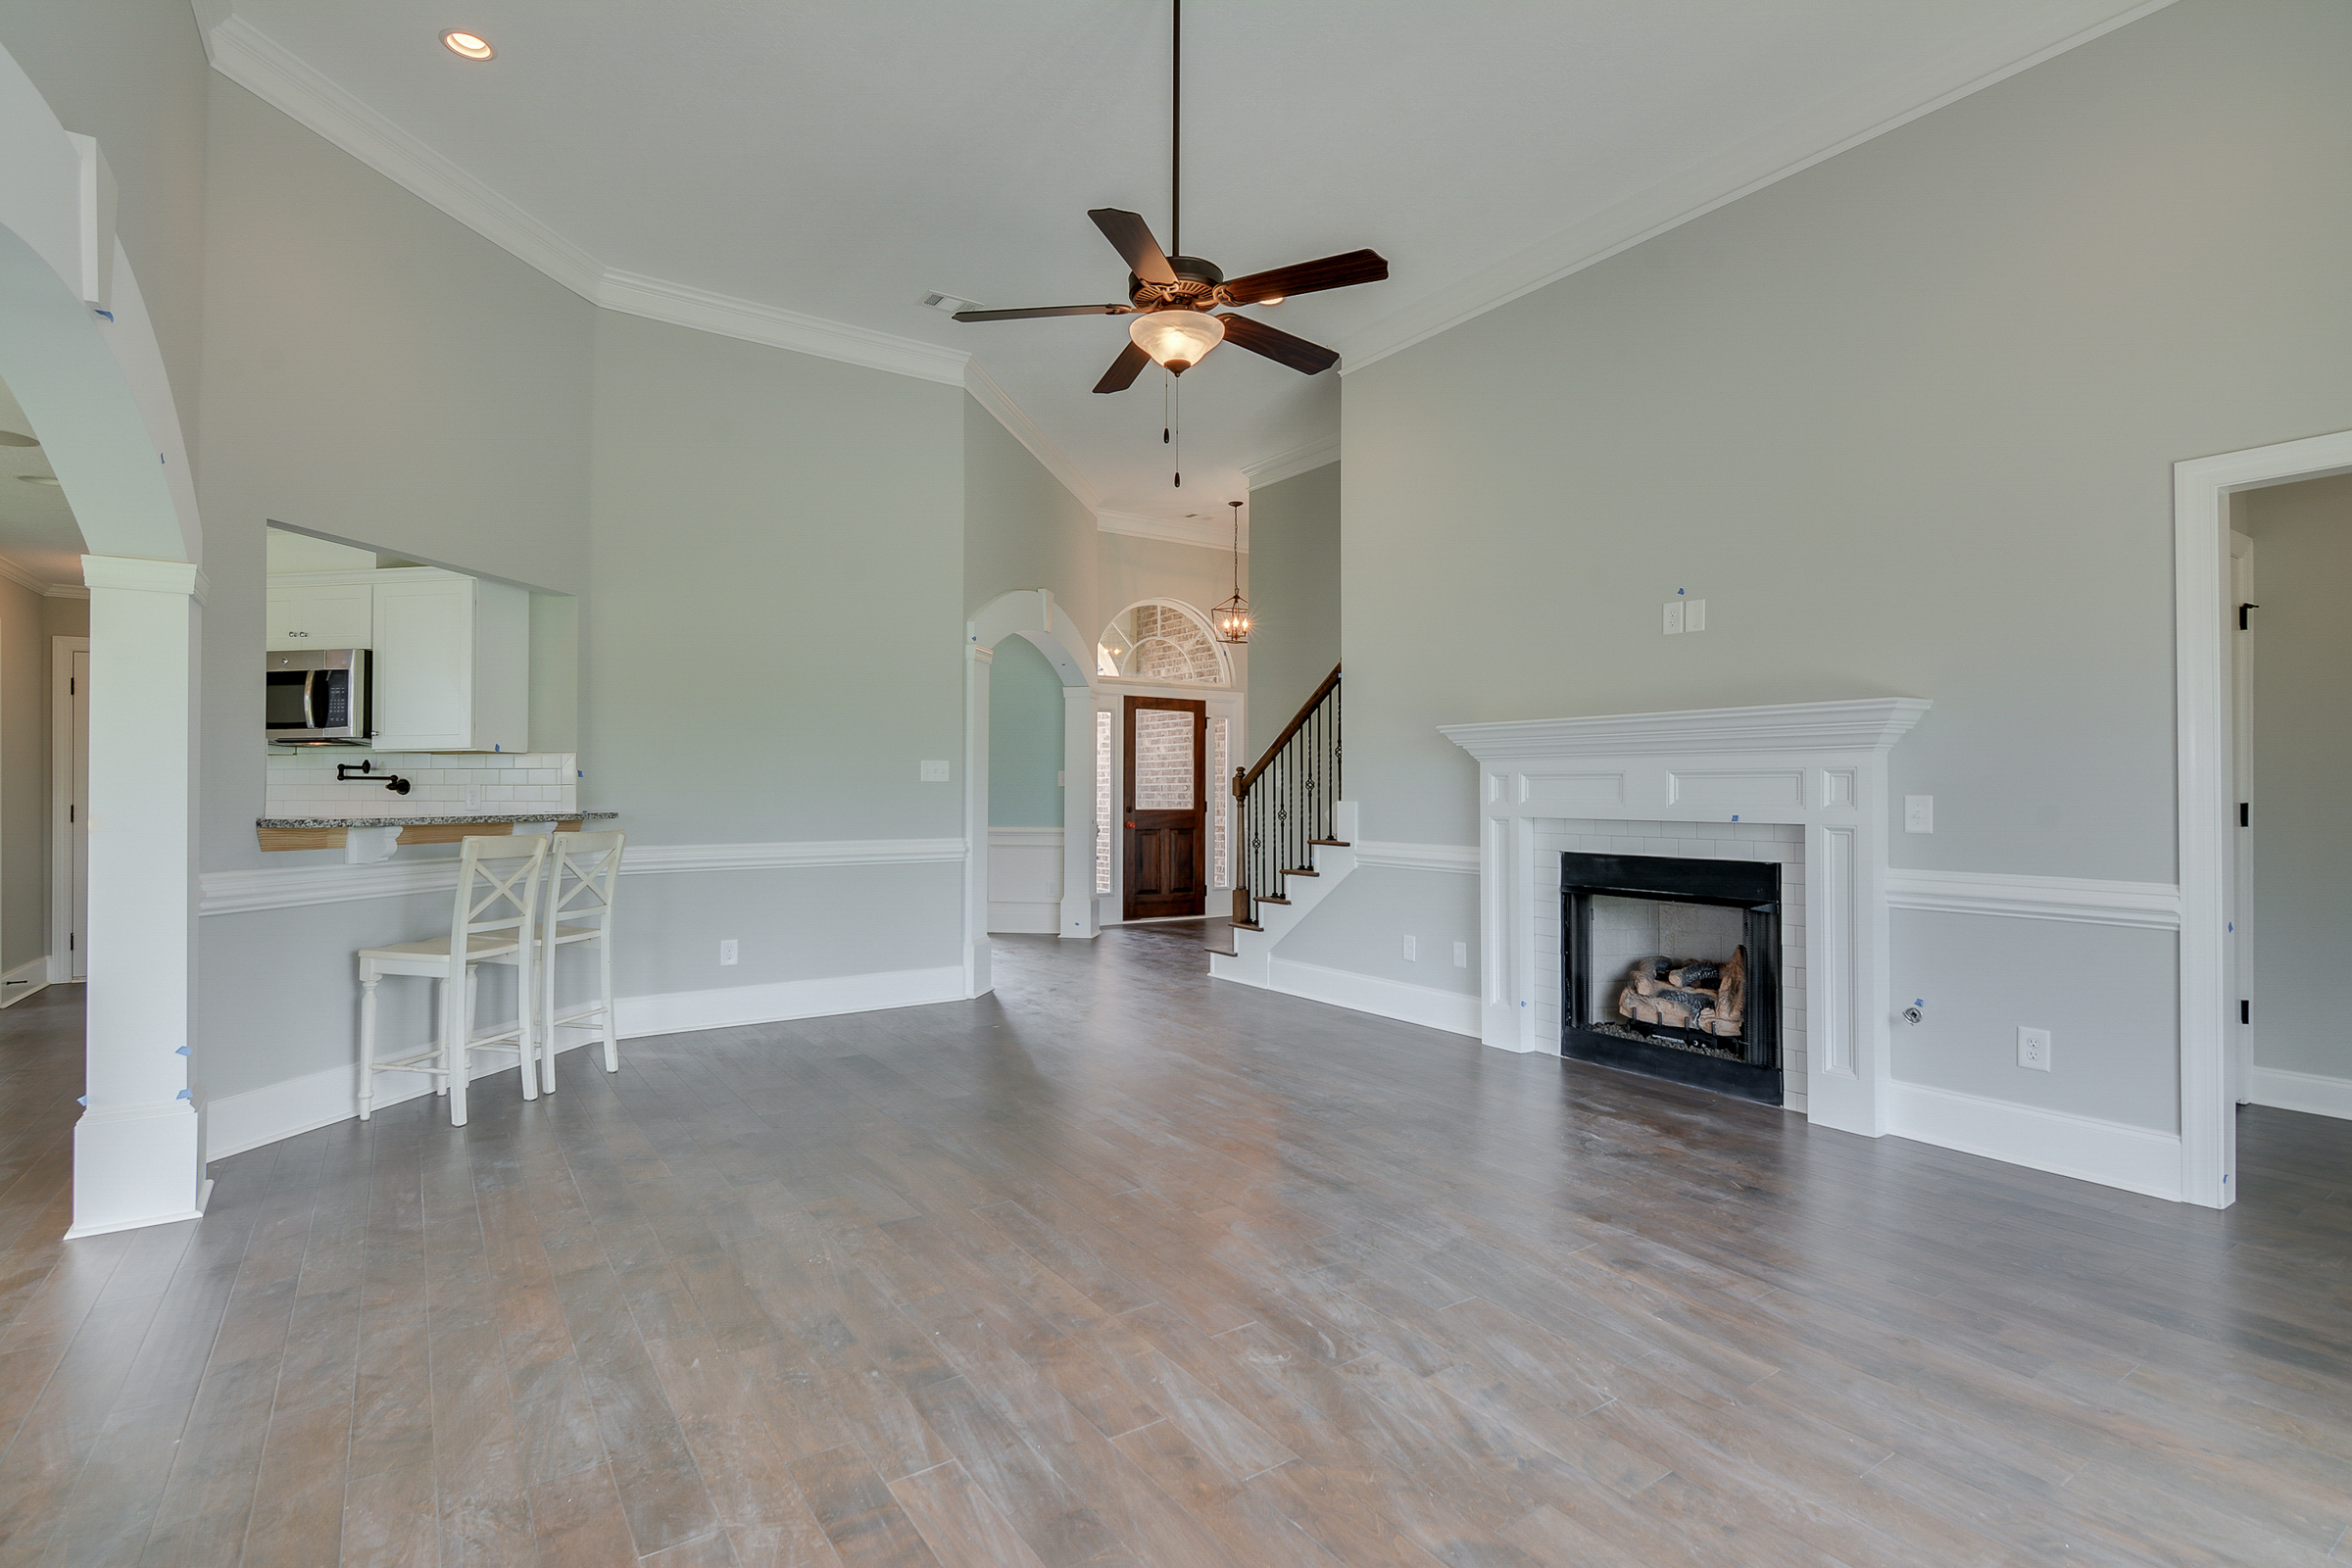 An image of a living room with high ceiling in Kelarie home.